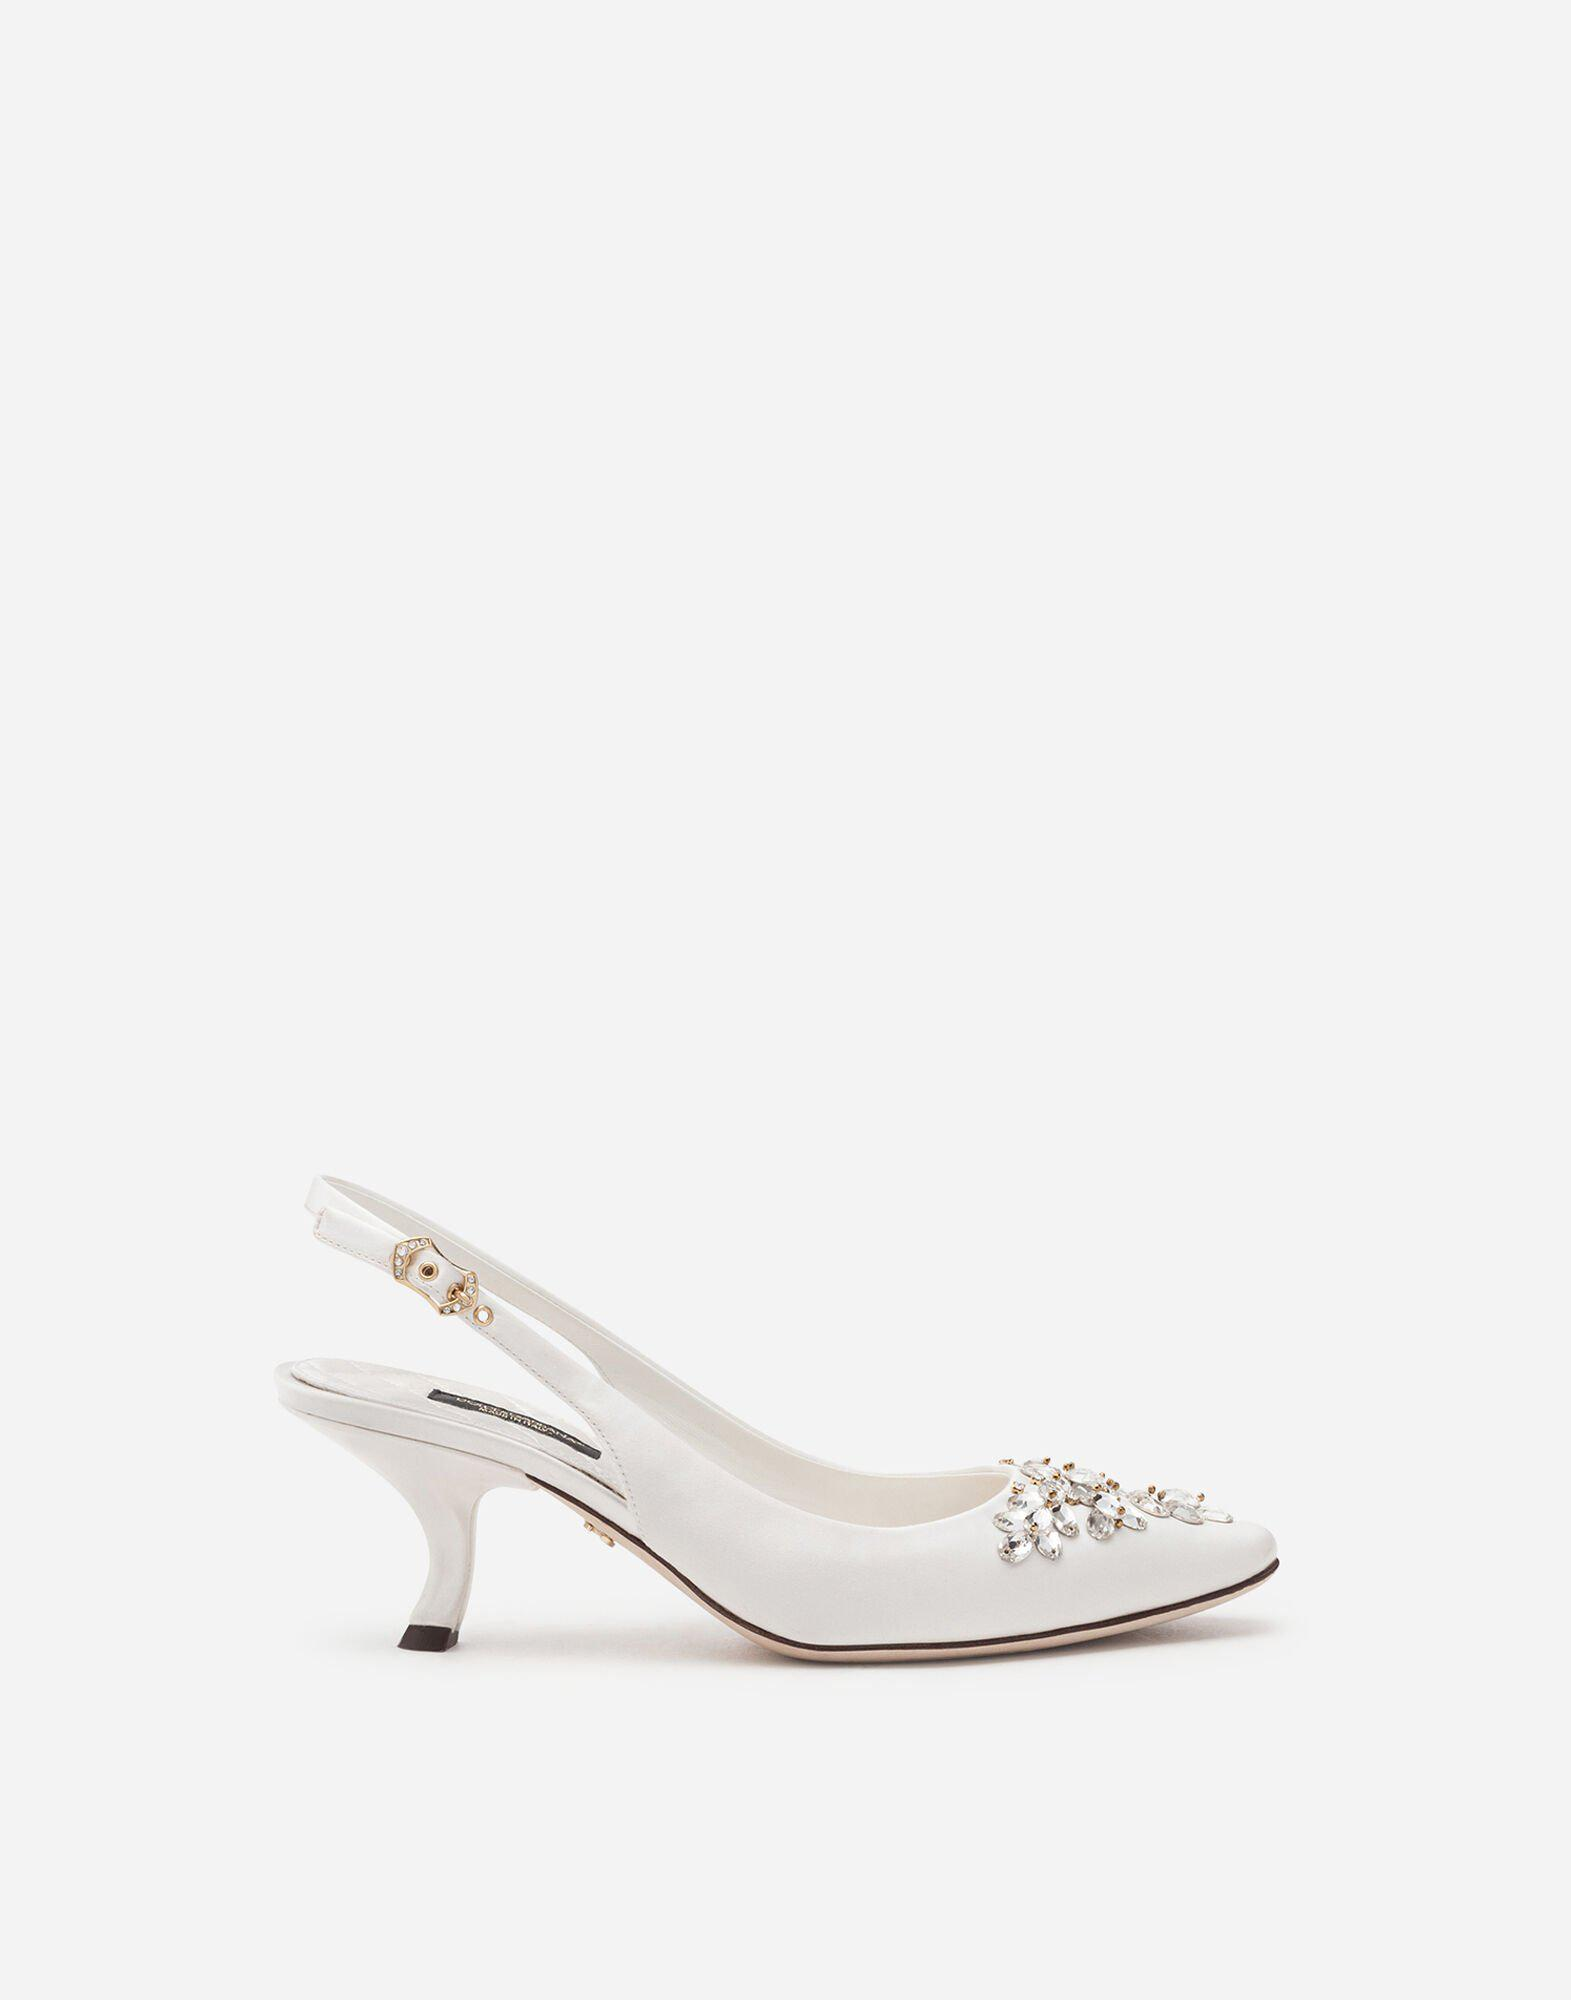 Satin sling back with bejeweled embroidery 0